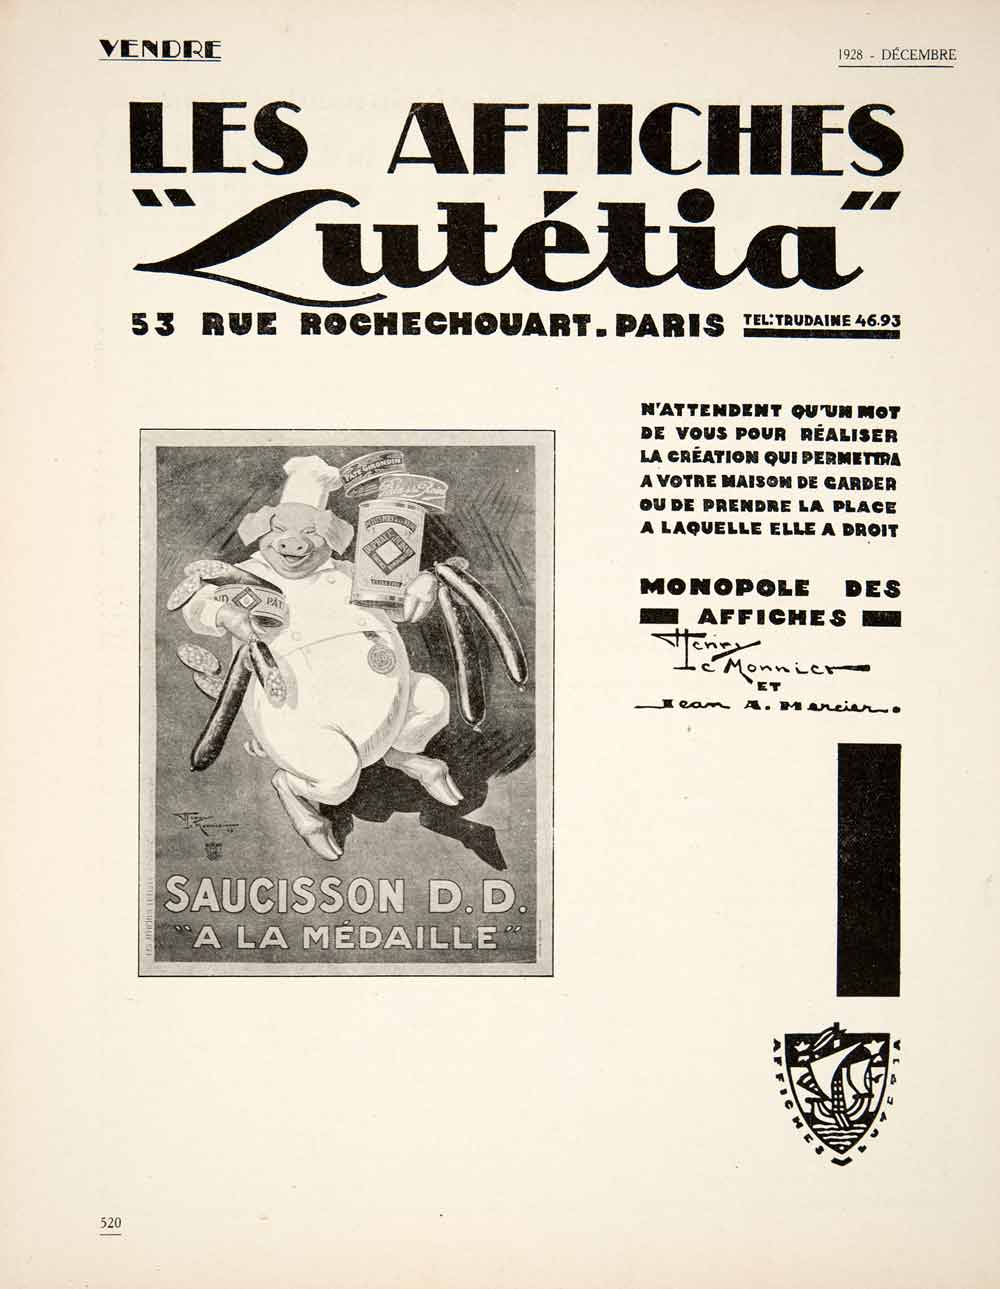 1928 Ad French Advertising Agency Les Affiches Lutetia Pig Saucisson Pork VEN5